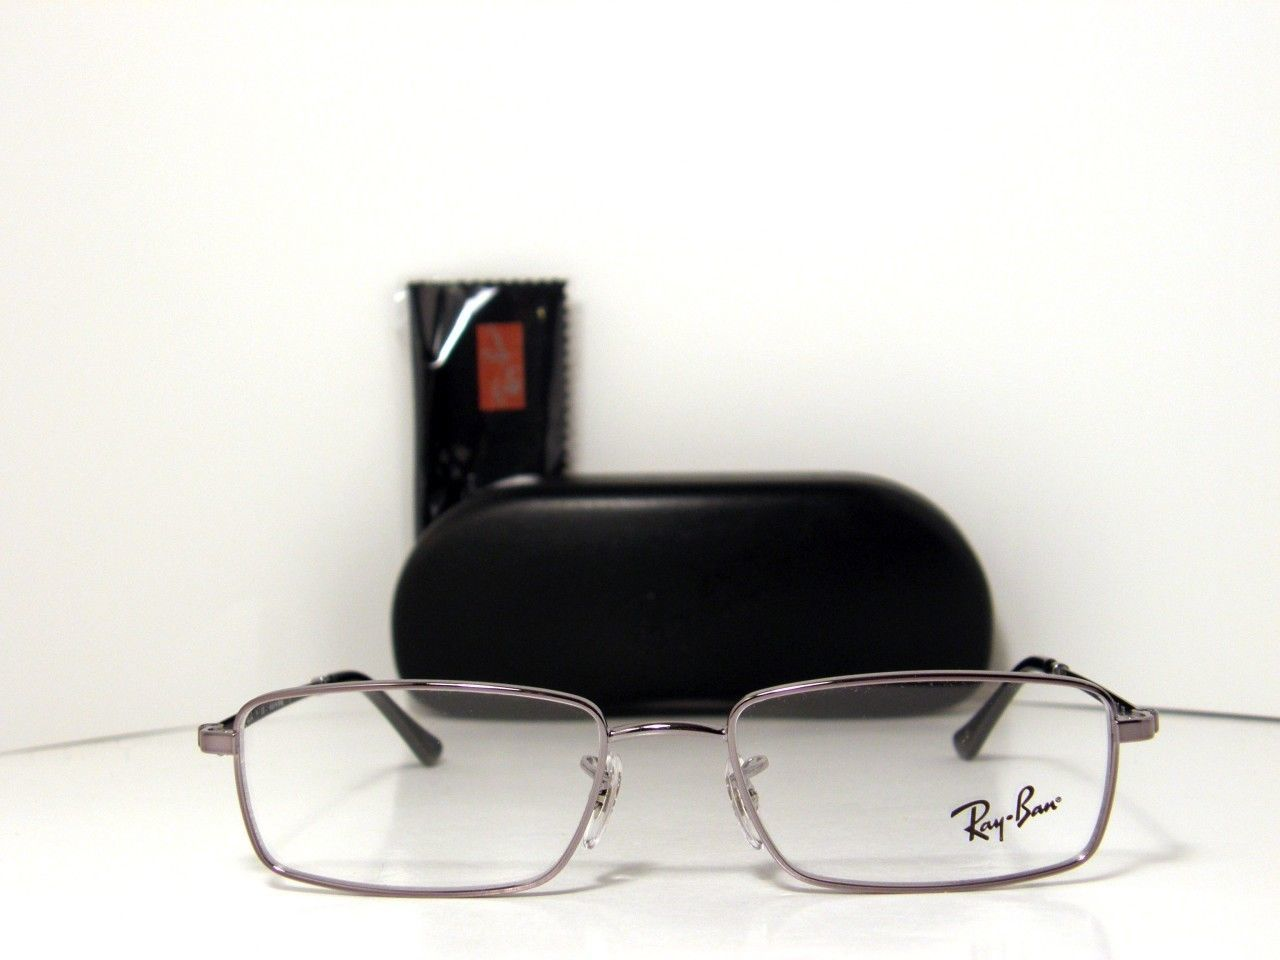 66bc4a1a921 Hot New Authentic Ray Ban Eyeglasses RB 6205 and 50 similar items. S l1600